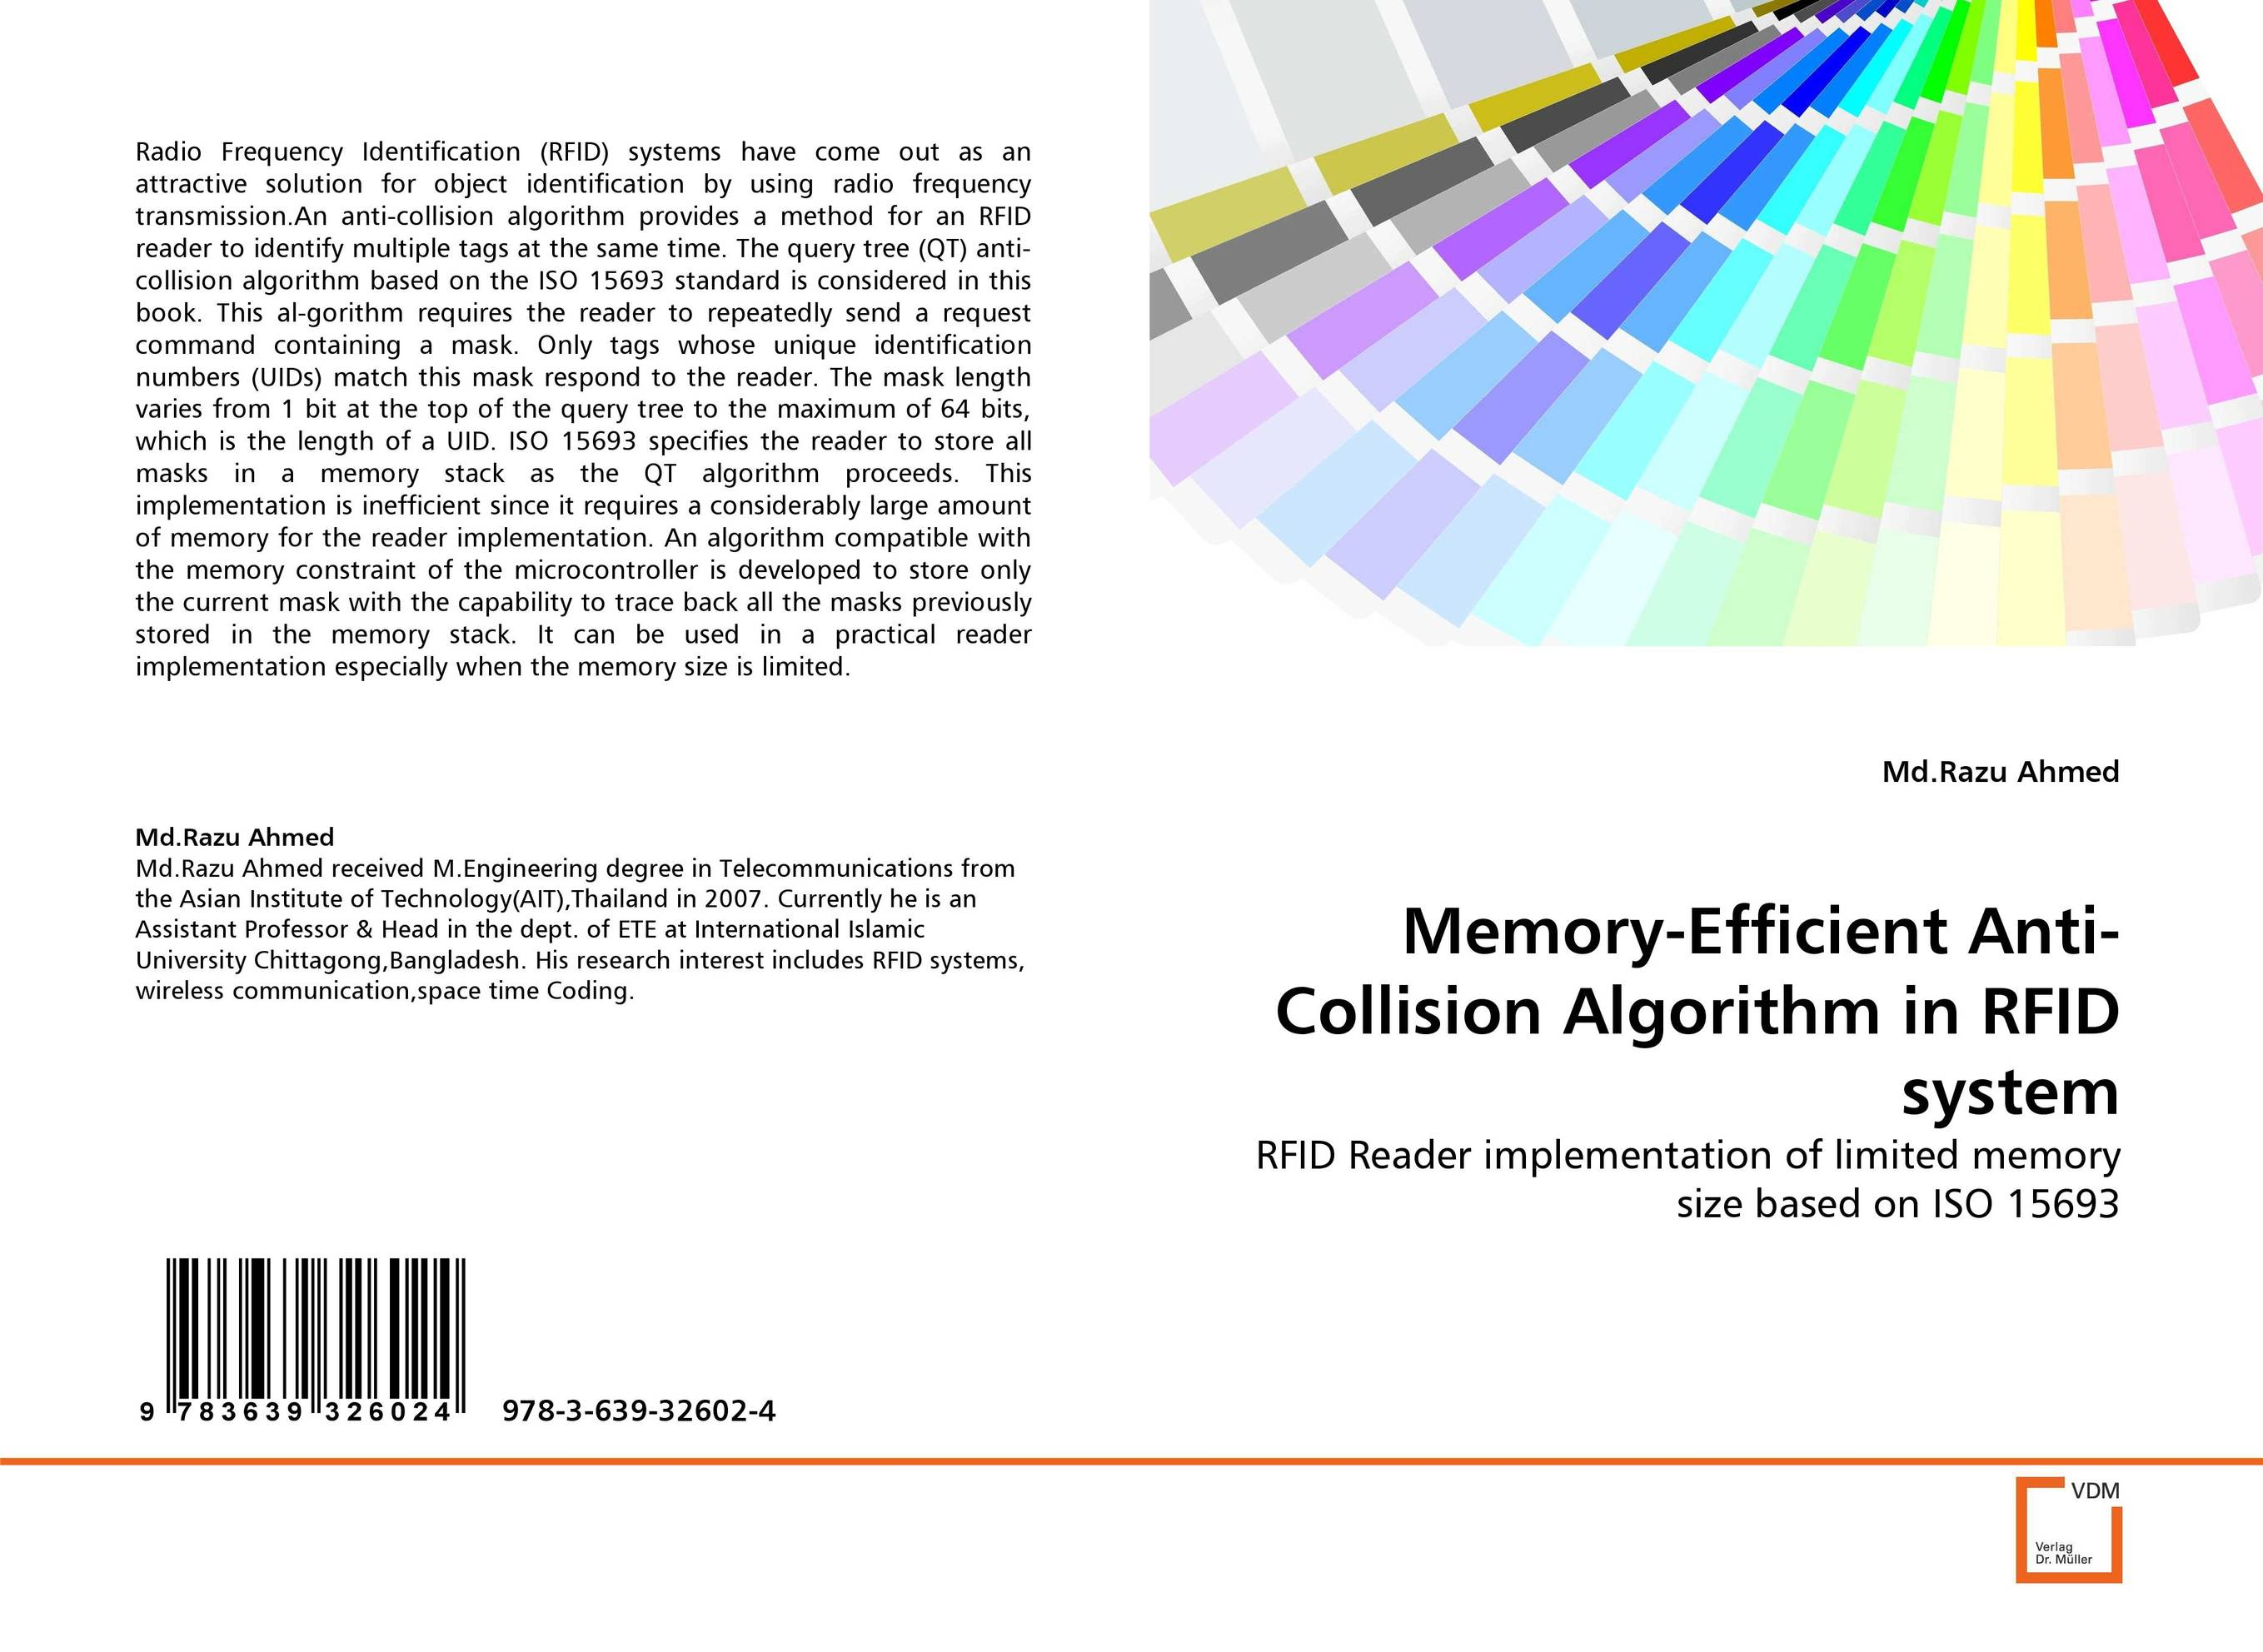 Memory-Efficient Anti-Collision Algorithm in RFID system the reader